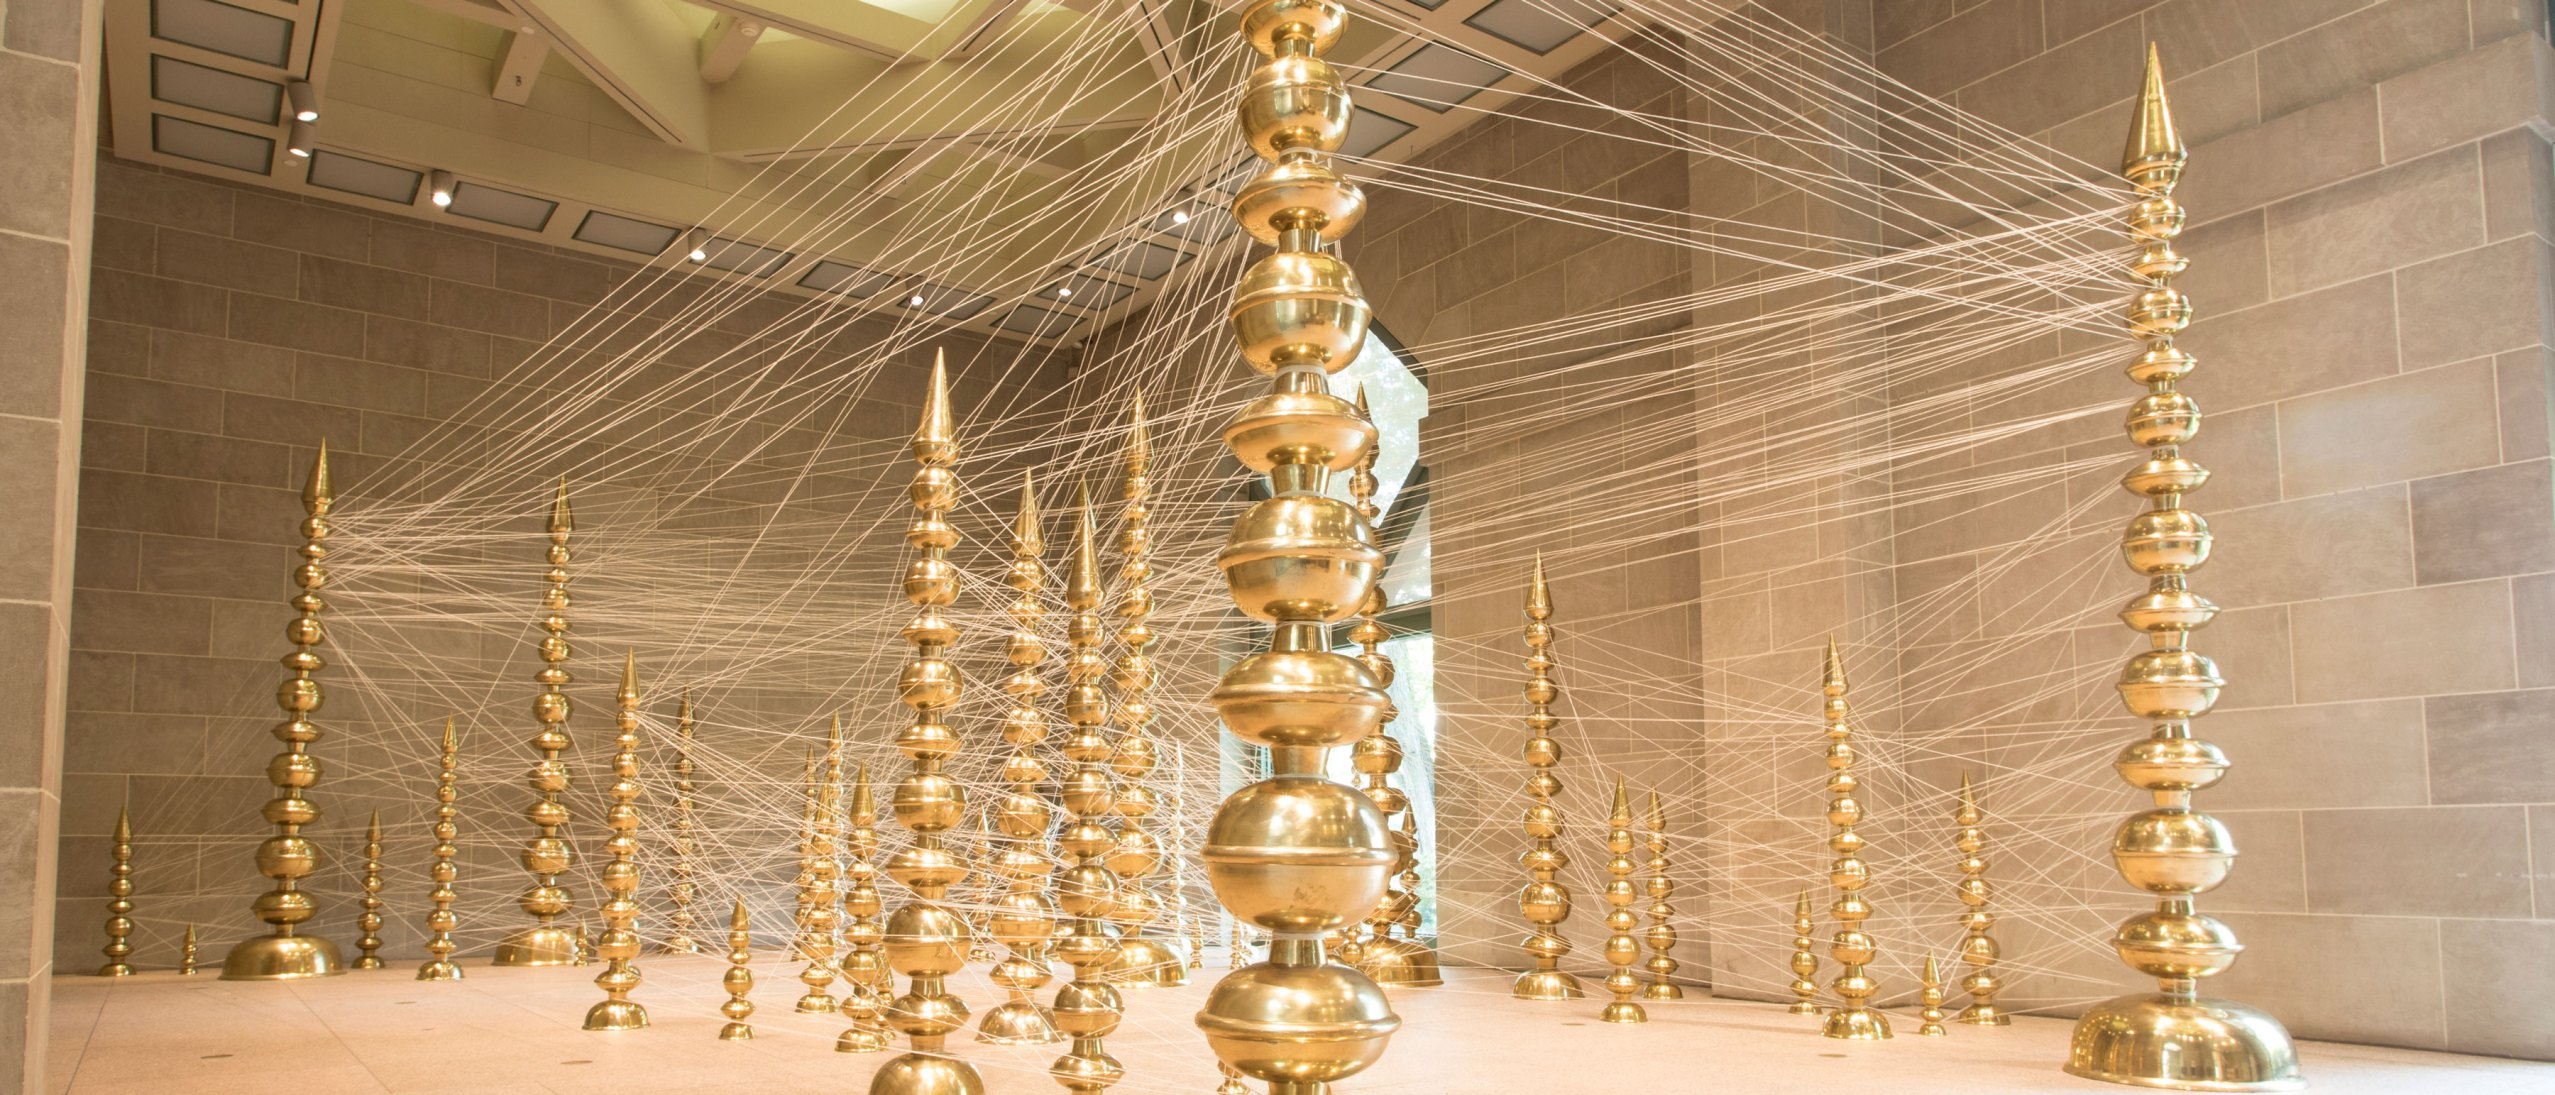 Subodh Gupta: Terminal as installed in the Sackler gallery pavillion